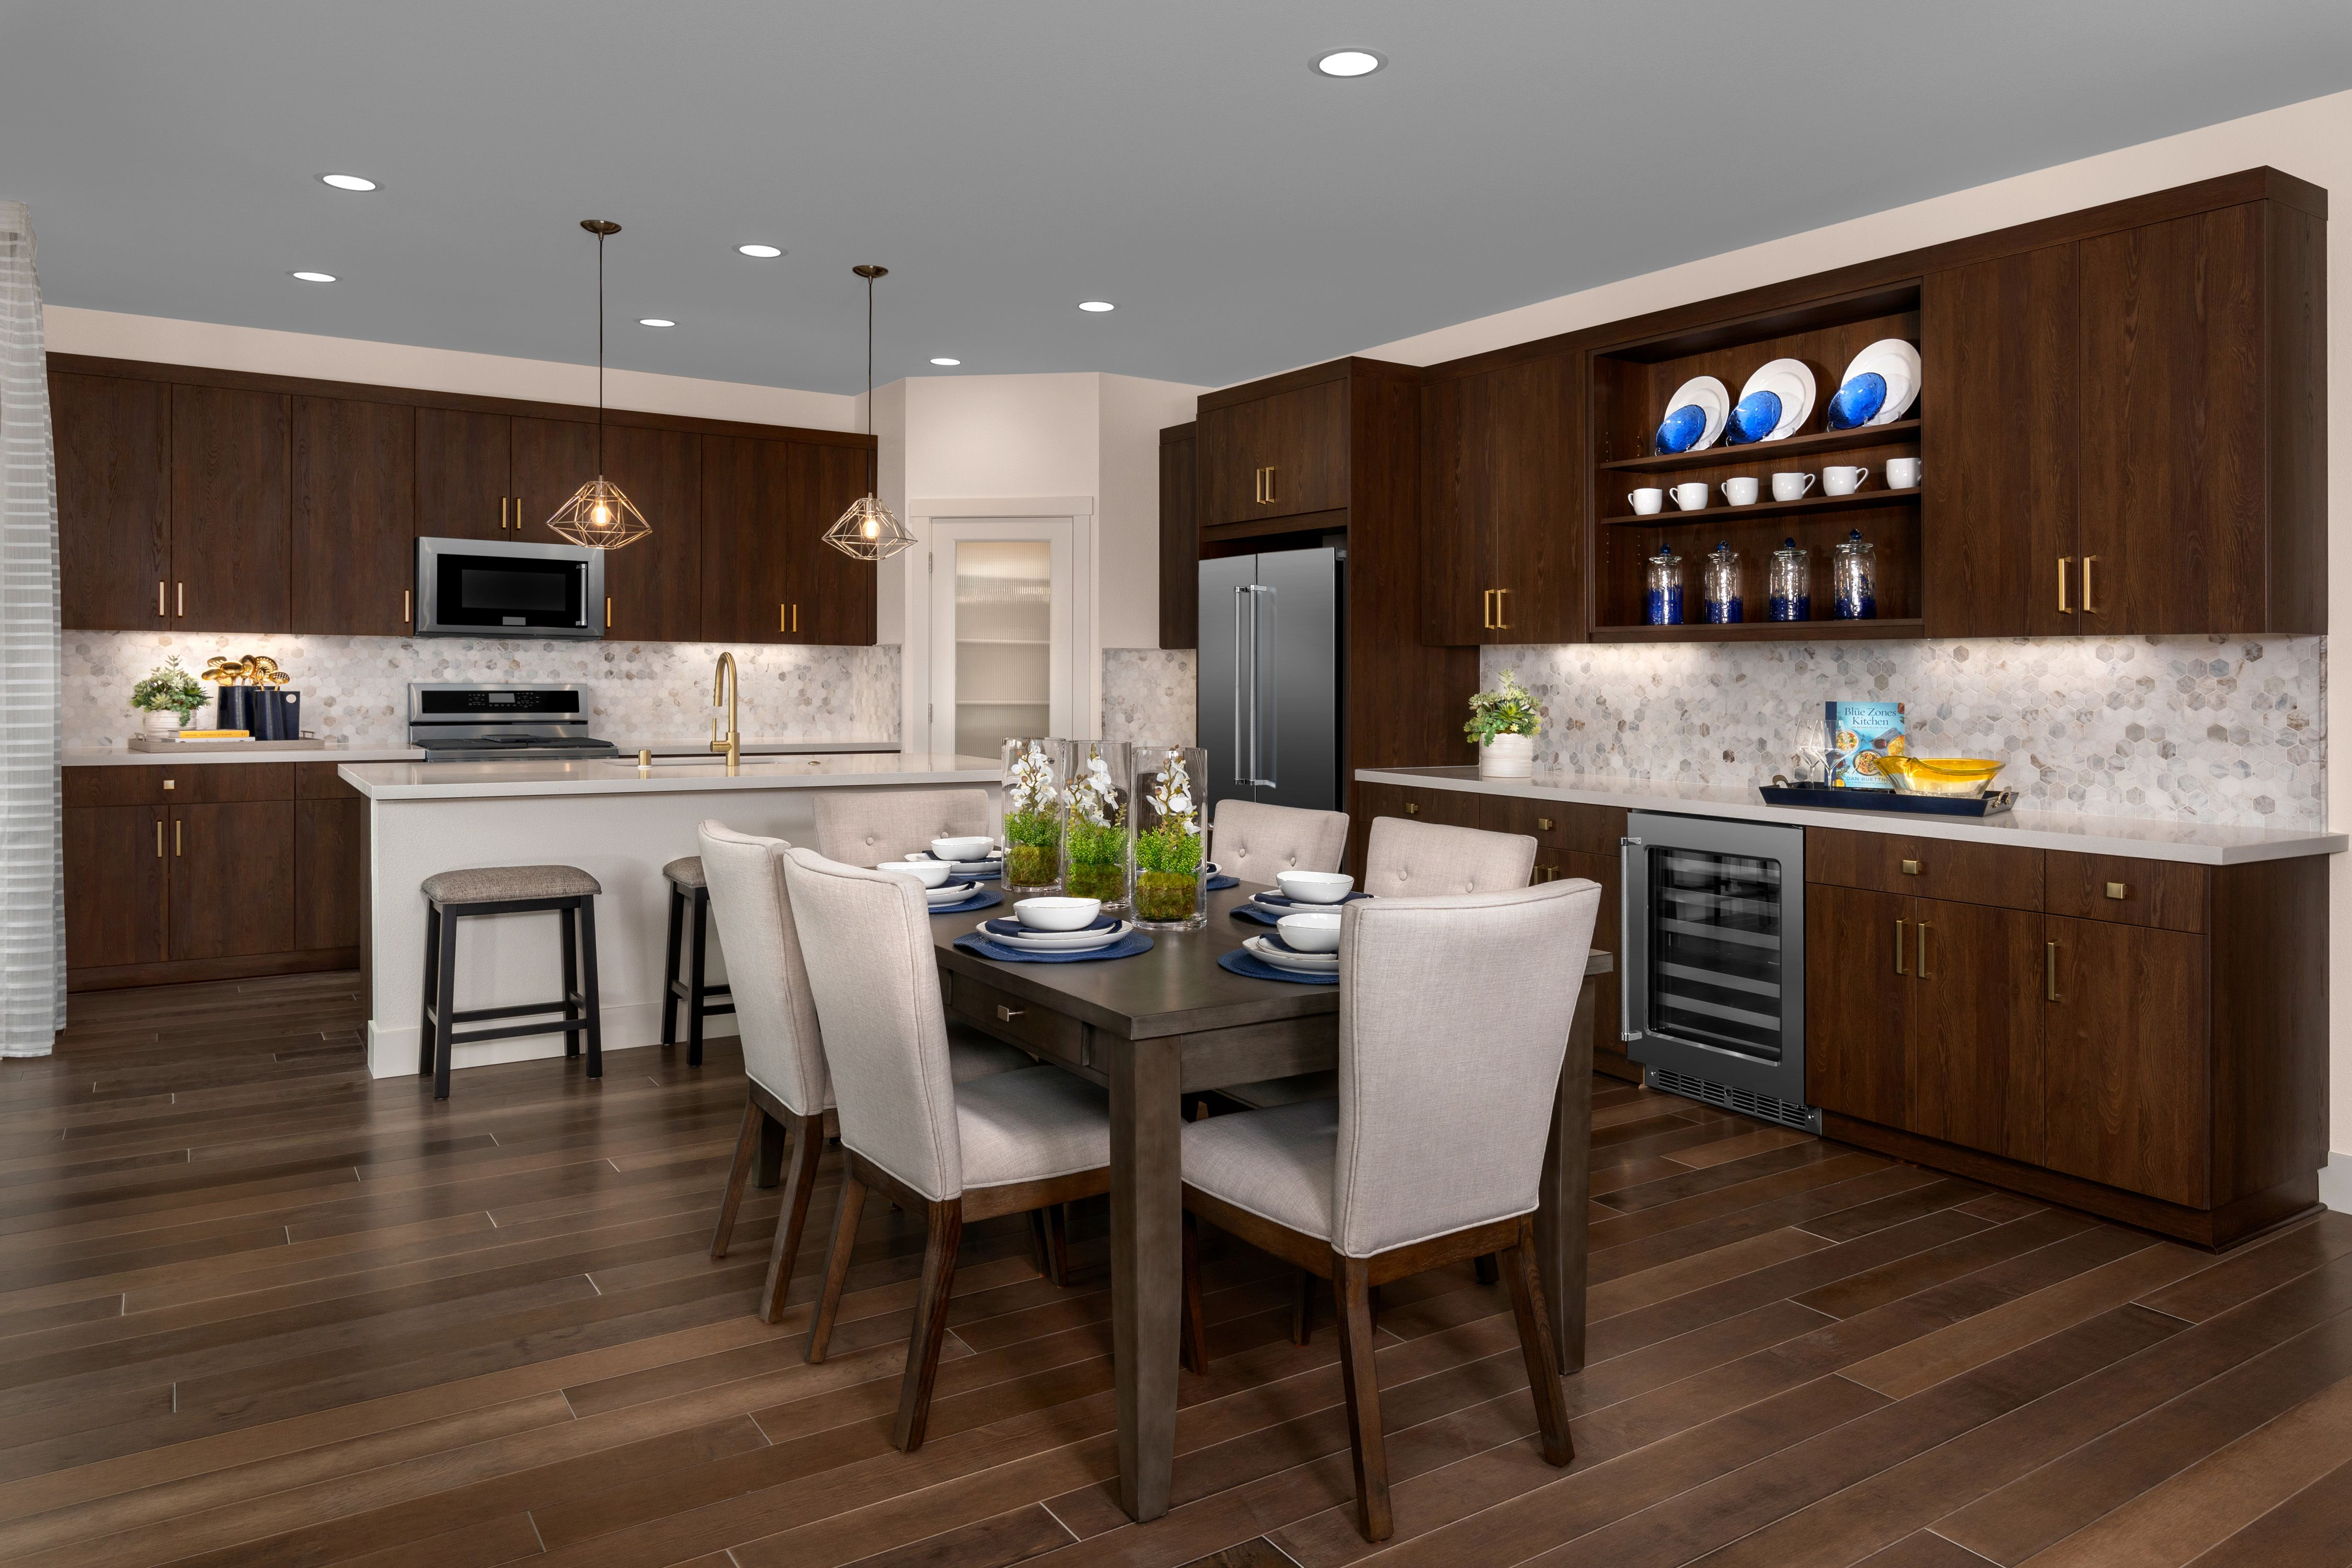 Kitchen featured in the Mayfair Residence 2 By Kiper Homes in Santa Cruz, CA